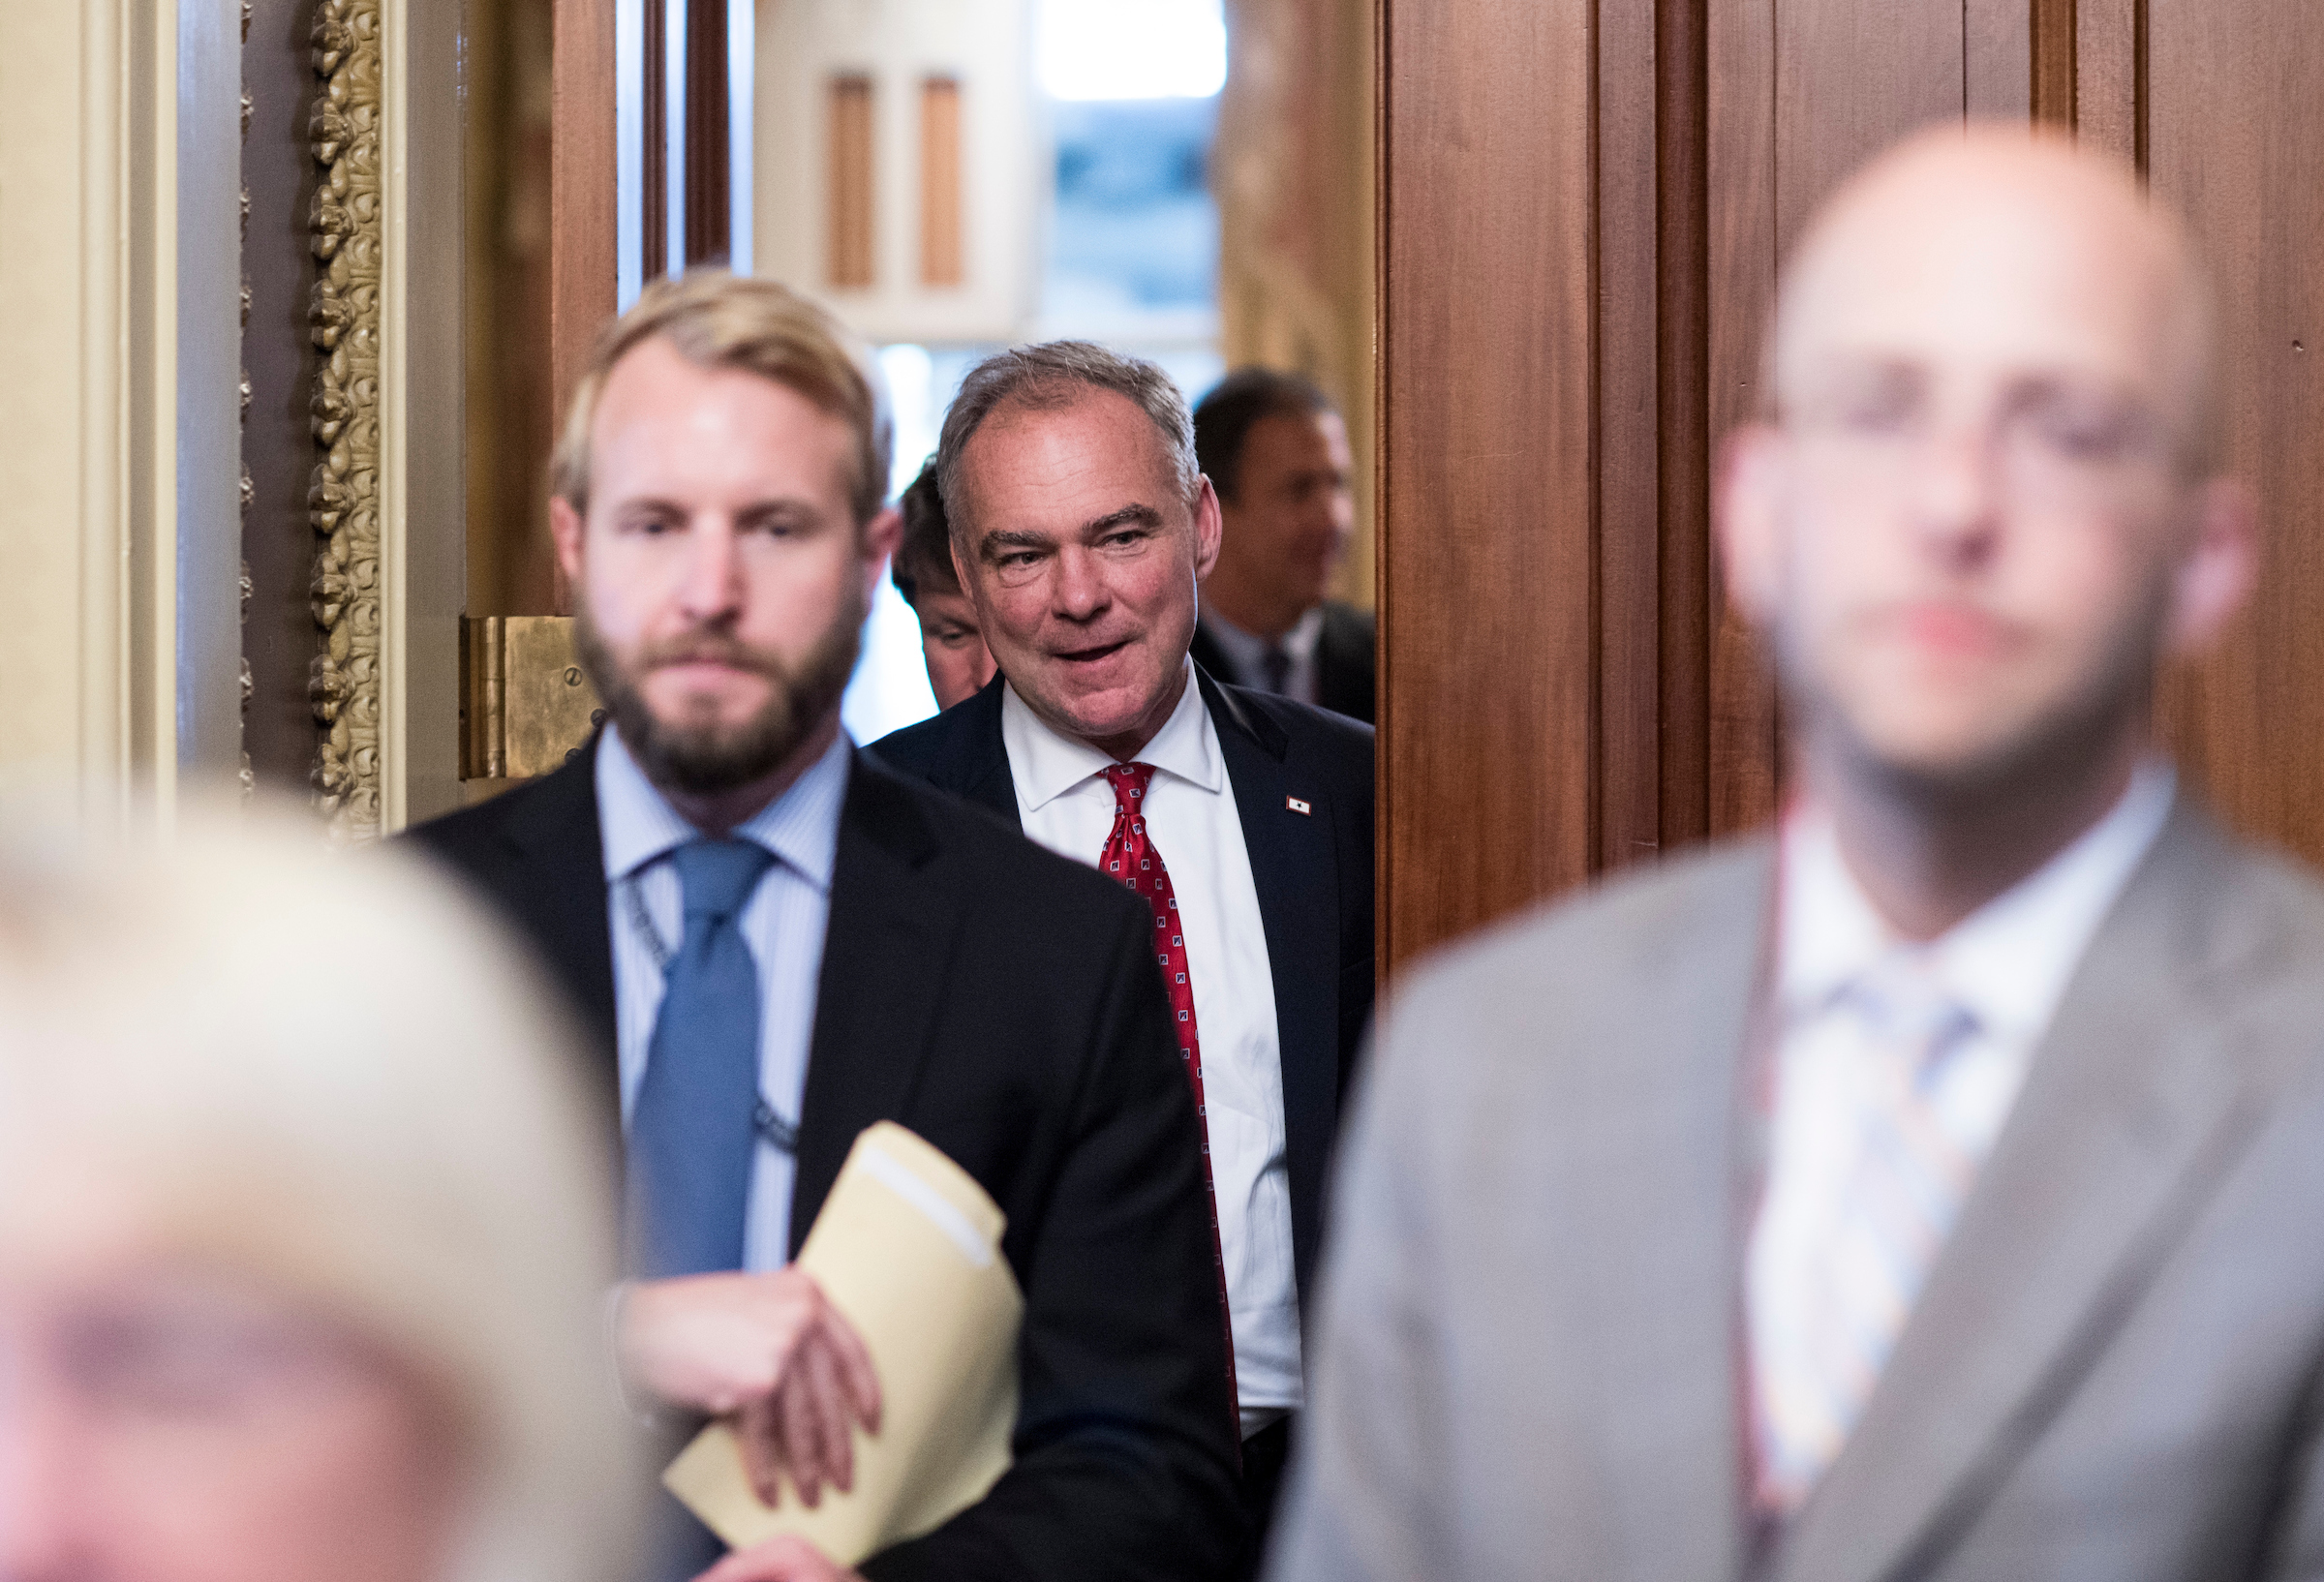 Democratic nominee for vice president Sen. Tim Kaine, D-Va., leaves after meeting with Senate Democrats during the their weekly policy lunch in the Capitol on Wednesday, Sept. 7, 2016. (Photo By Bill Clark/CQ Roll Call)